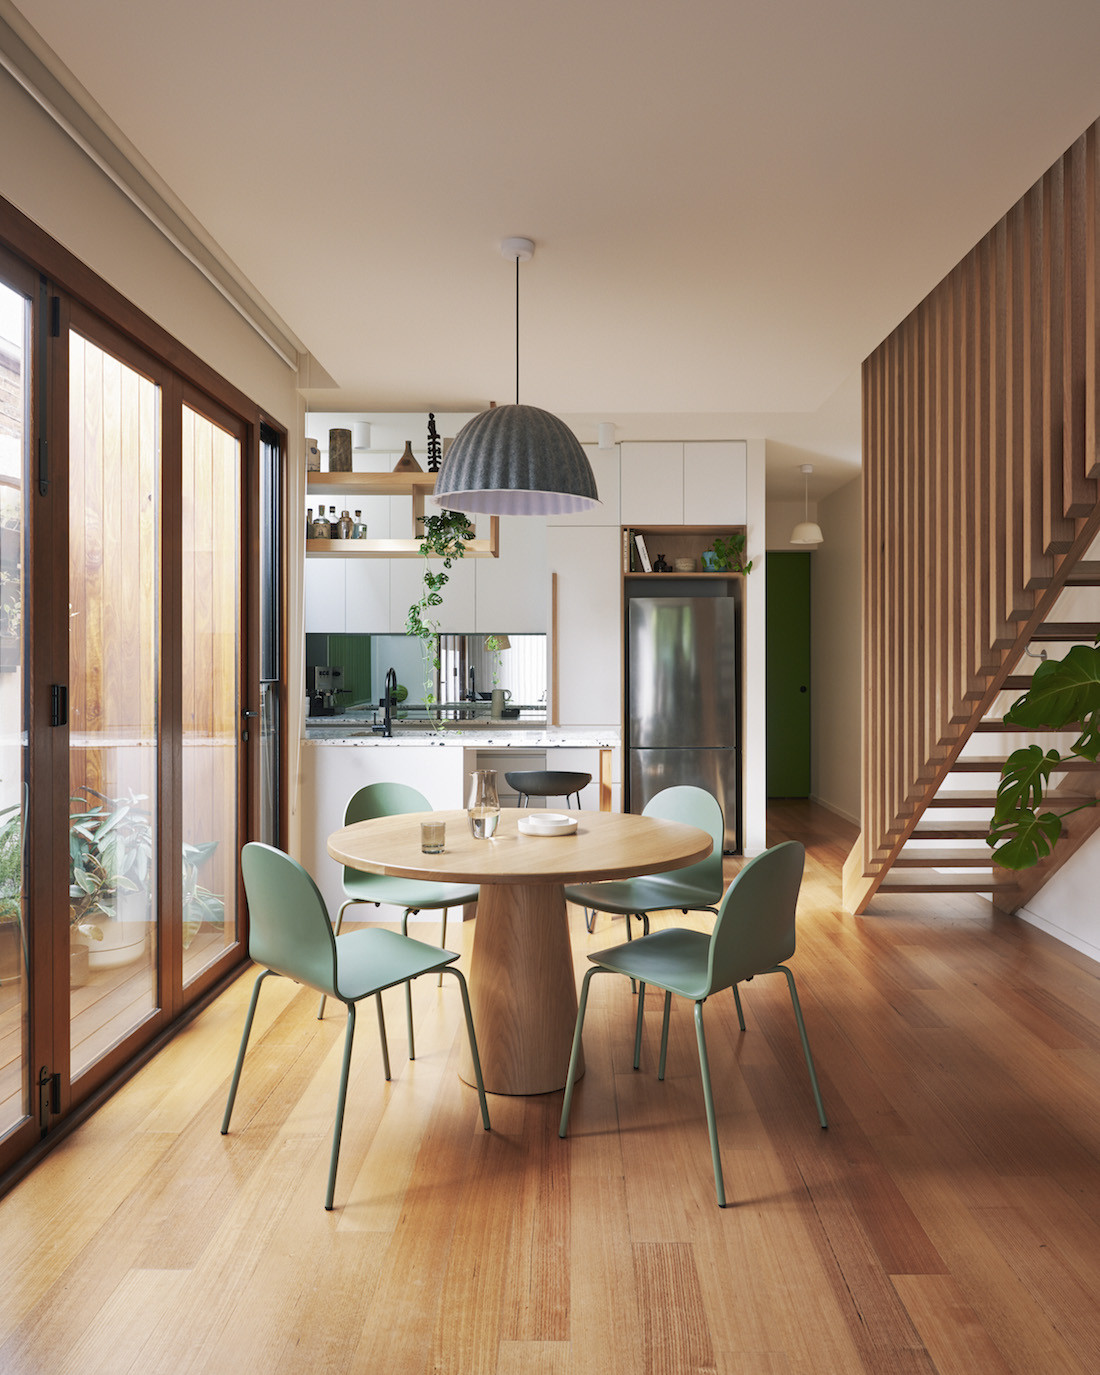 Dining table, floating staircase and kitchen of the Brunswick home.